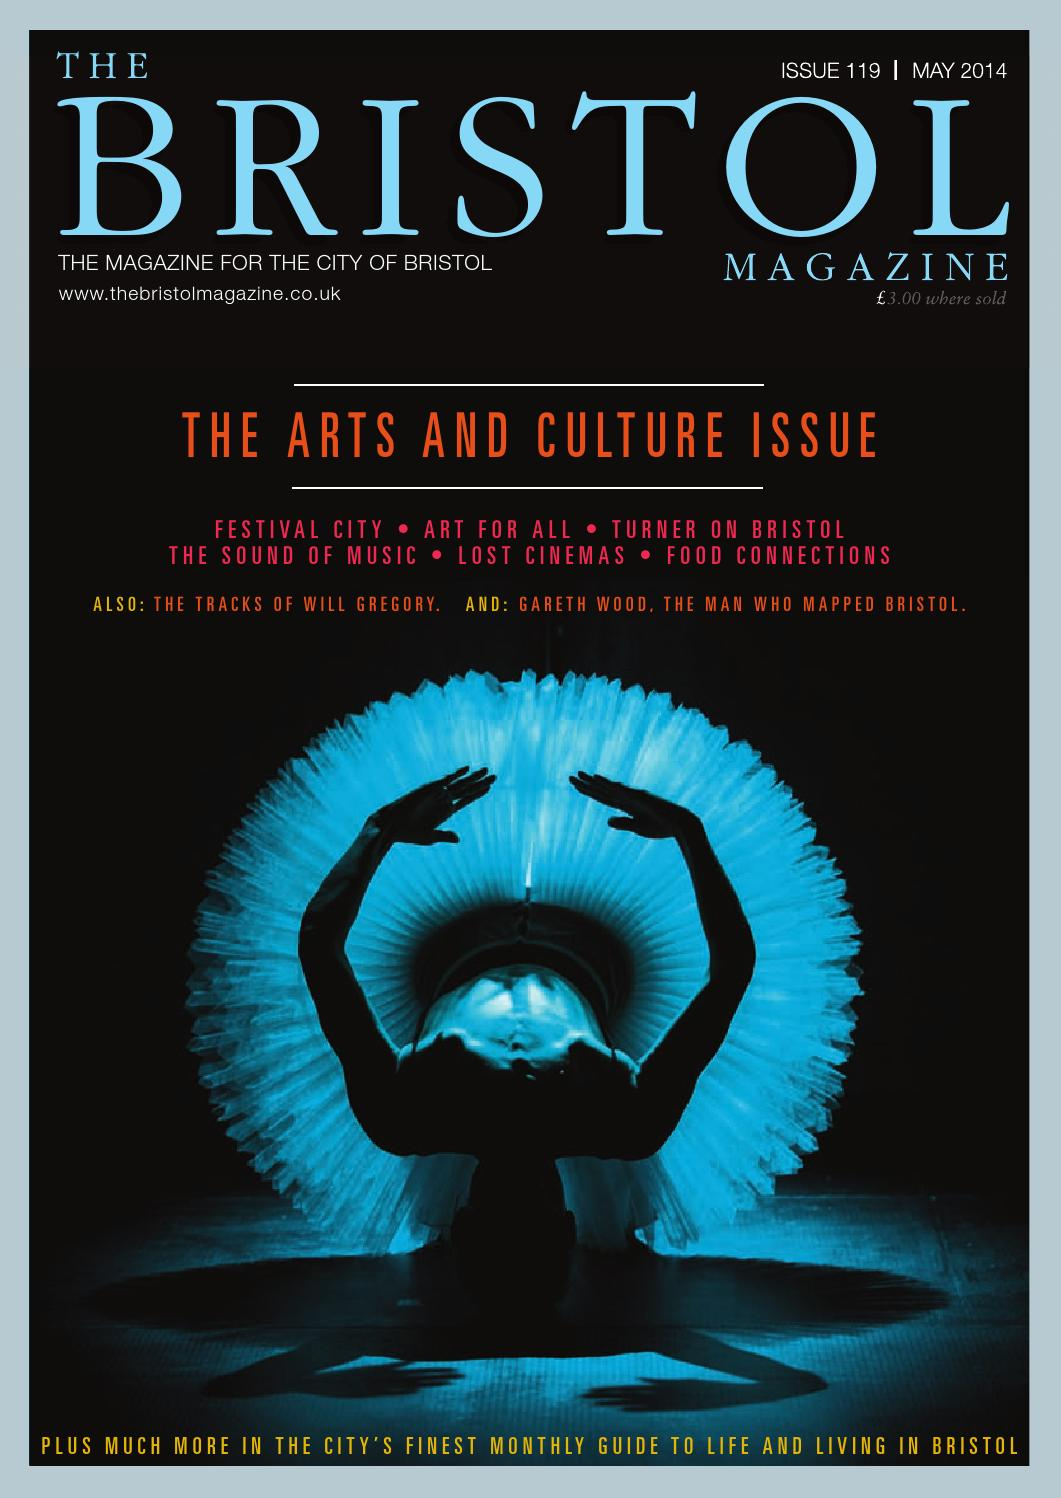 78aedc31e1a4 The Bristol Magazine May 2014 by MC Publishing Limited - issuu